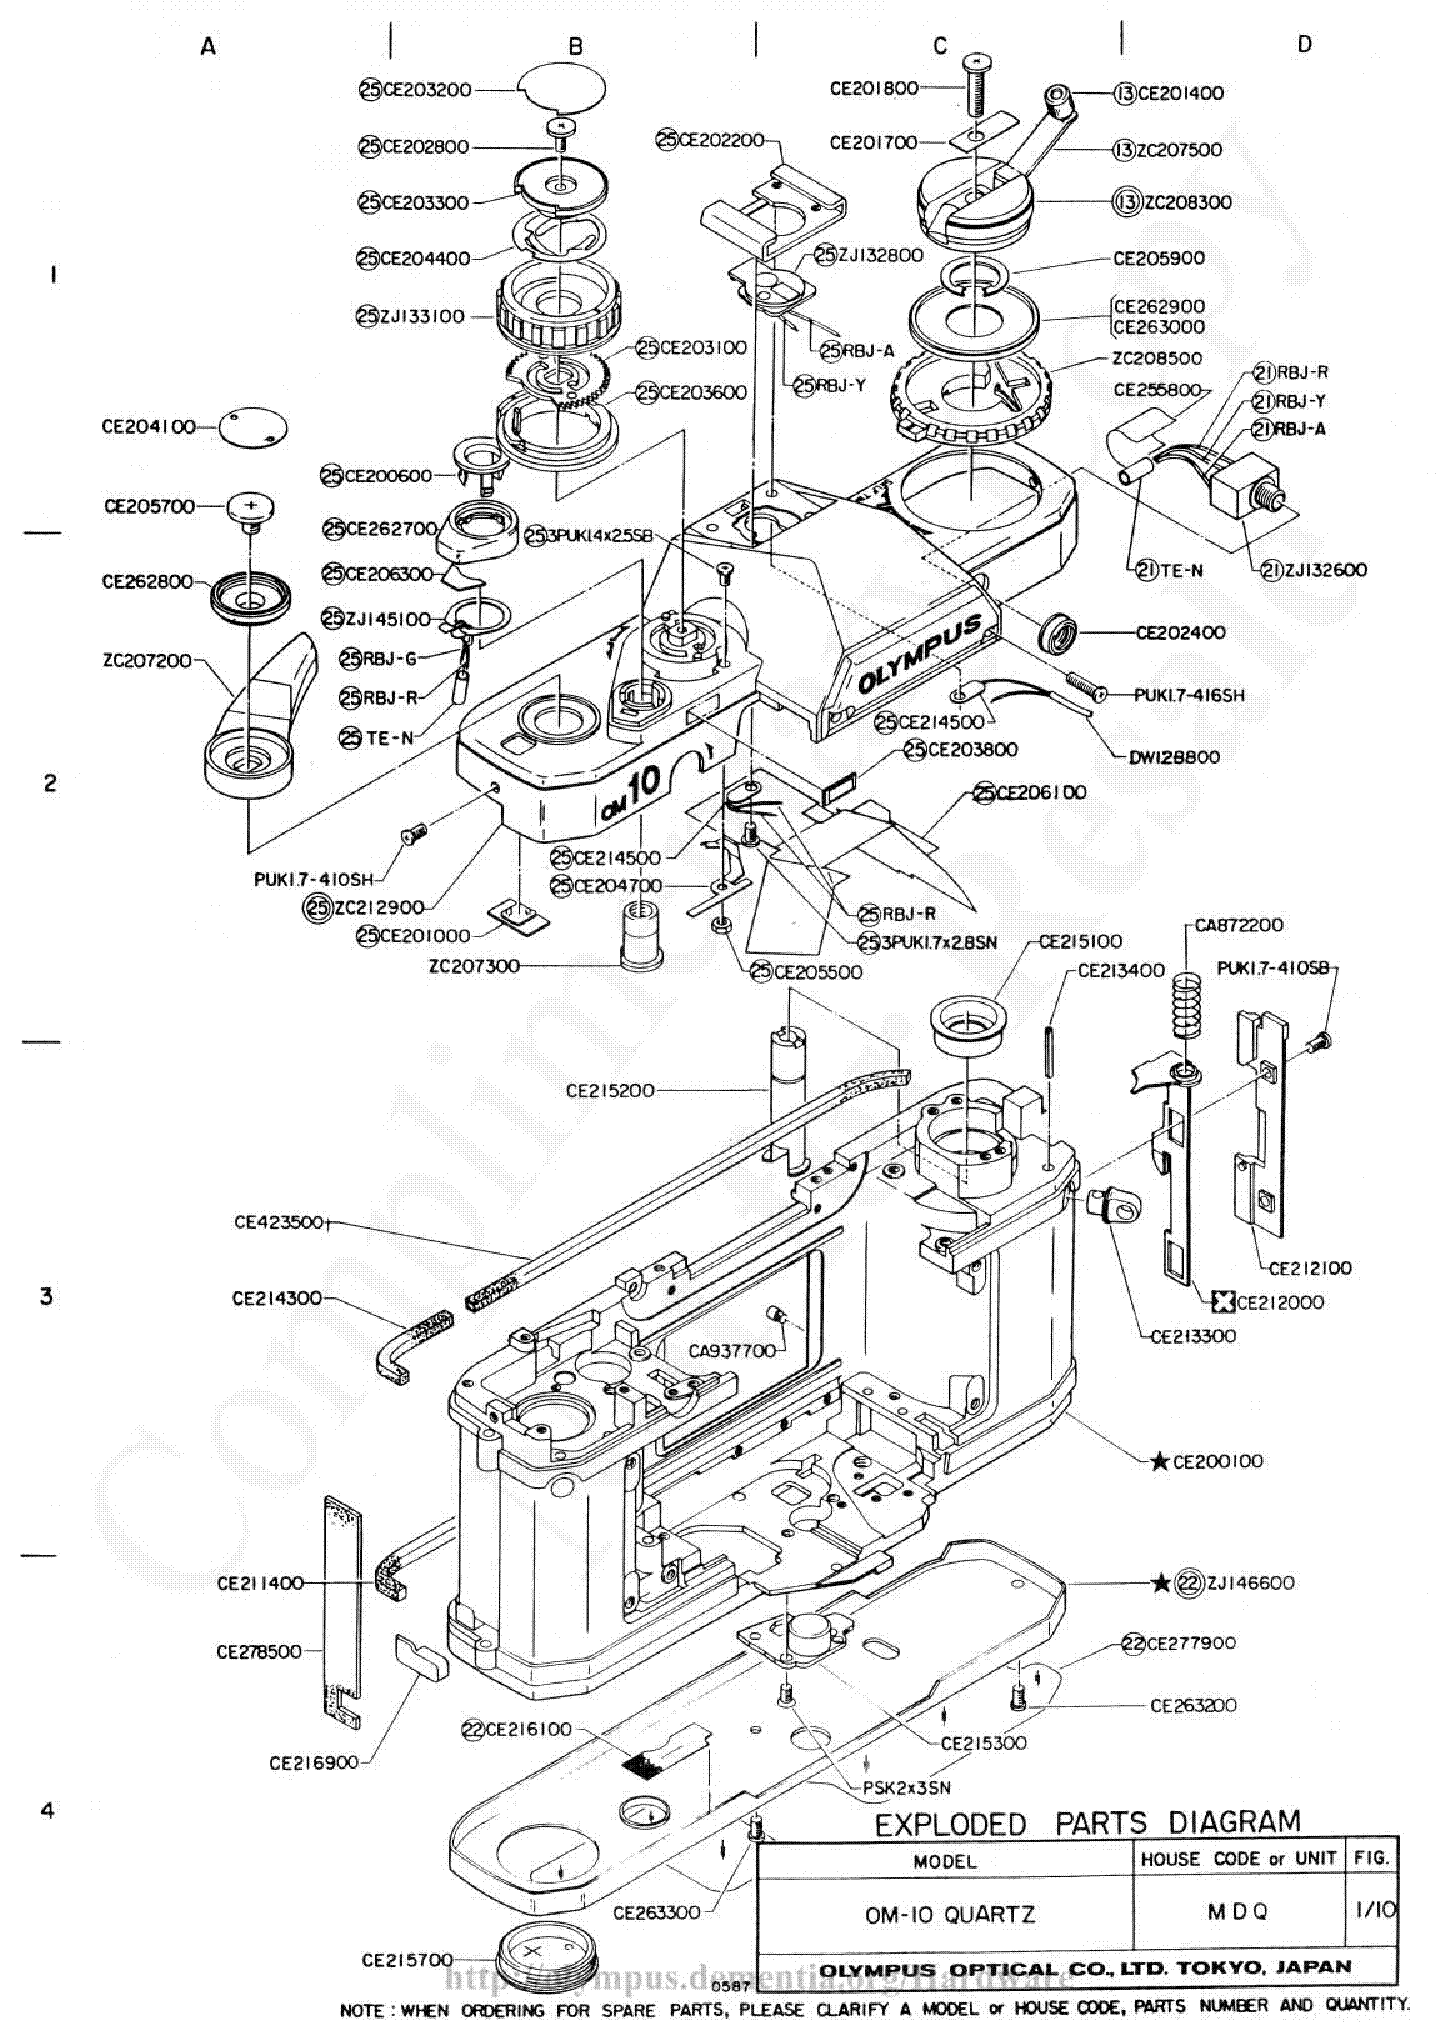 Olympus Om 10 Quartz Exploded Parts Diagram Service Manual